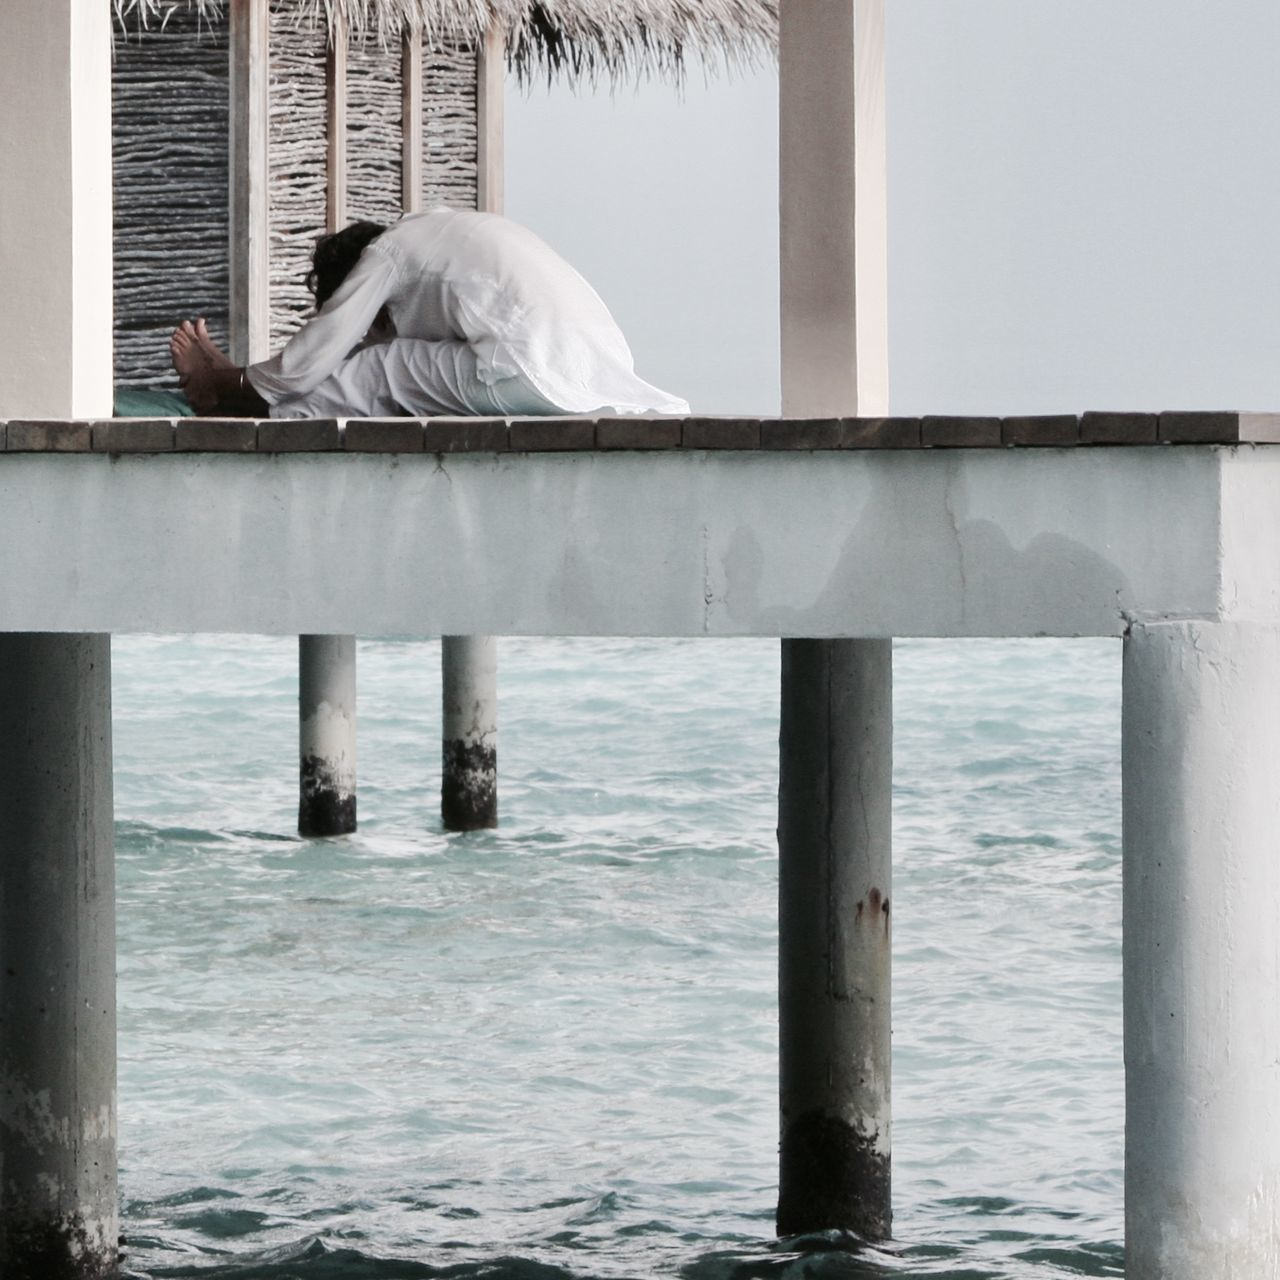 Architecture Built Structure Enjoy The New Normal EyeEm Best Shots Getting Away From It All Leisure Activity Maldives Ocean Outdoors People Sea Sport Stilt House Taking Photos Travel Unrecognizable Person Water Waterfront Wave Woman Yoga My Year My View Miles Away